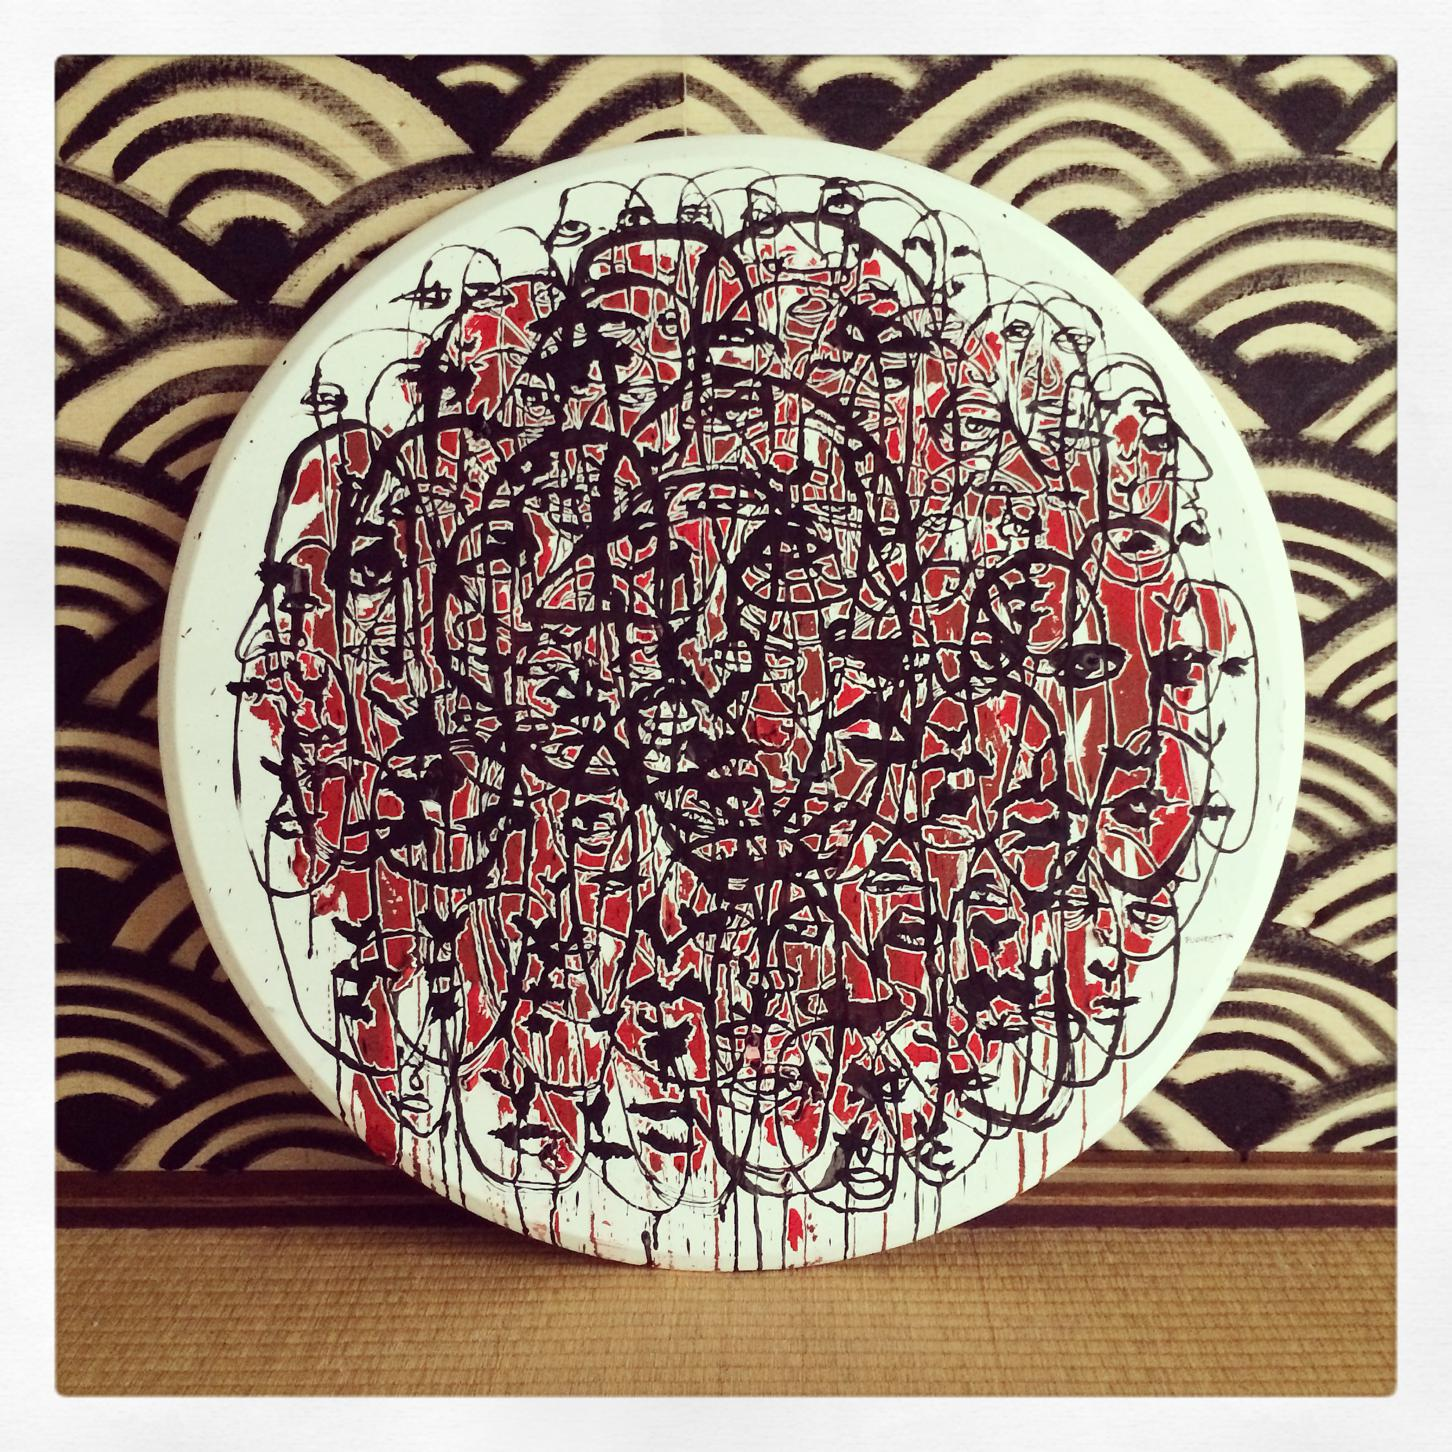 Untitled. September 2014. 75cm diameter. Ink, gouache and correction fluid on table top